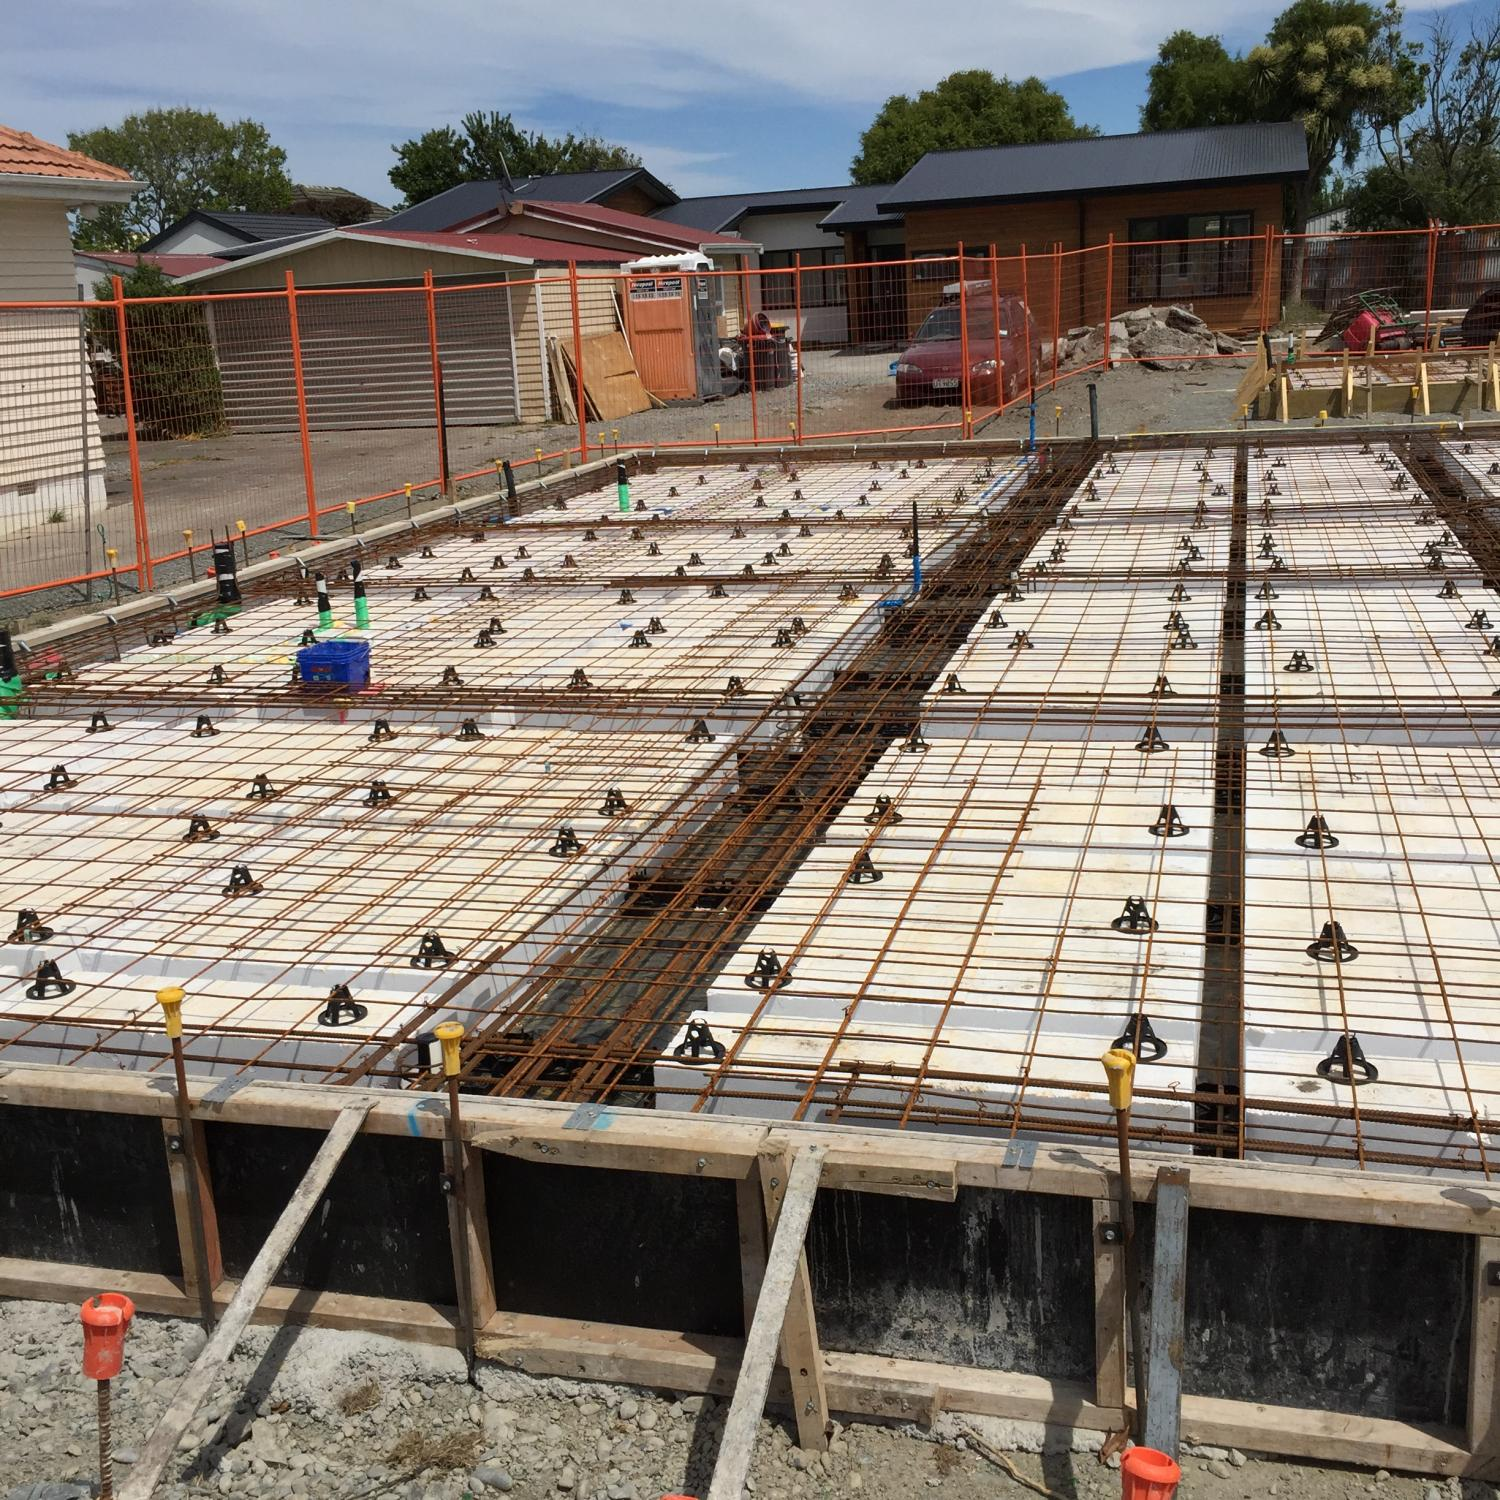 solid raft foundation A raft foundation consists of a raft of reinforced concrete under the whole of a building this type of foundation is described as a raft in the sense that the concrete raft is cast on the surface of the ground which supports it, as water does a raft, and the foundation is not fixed by foundations carried down into the subsoil.